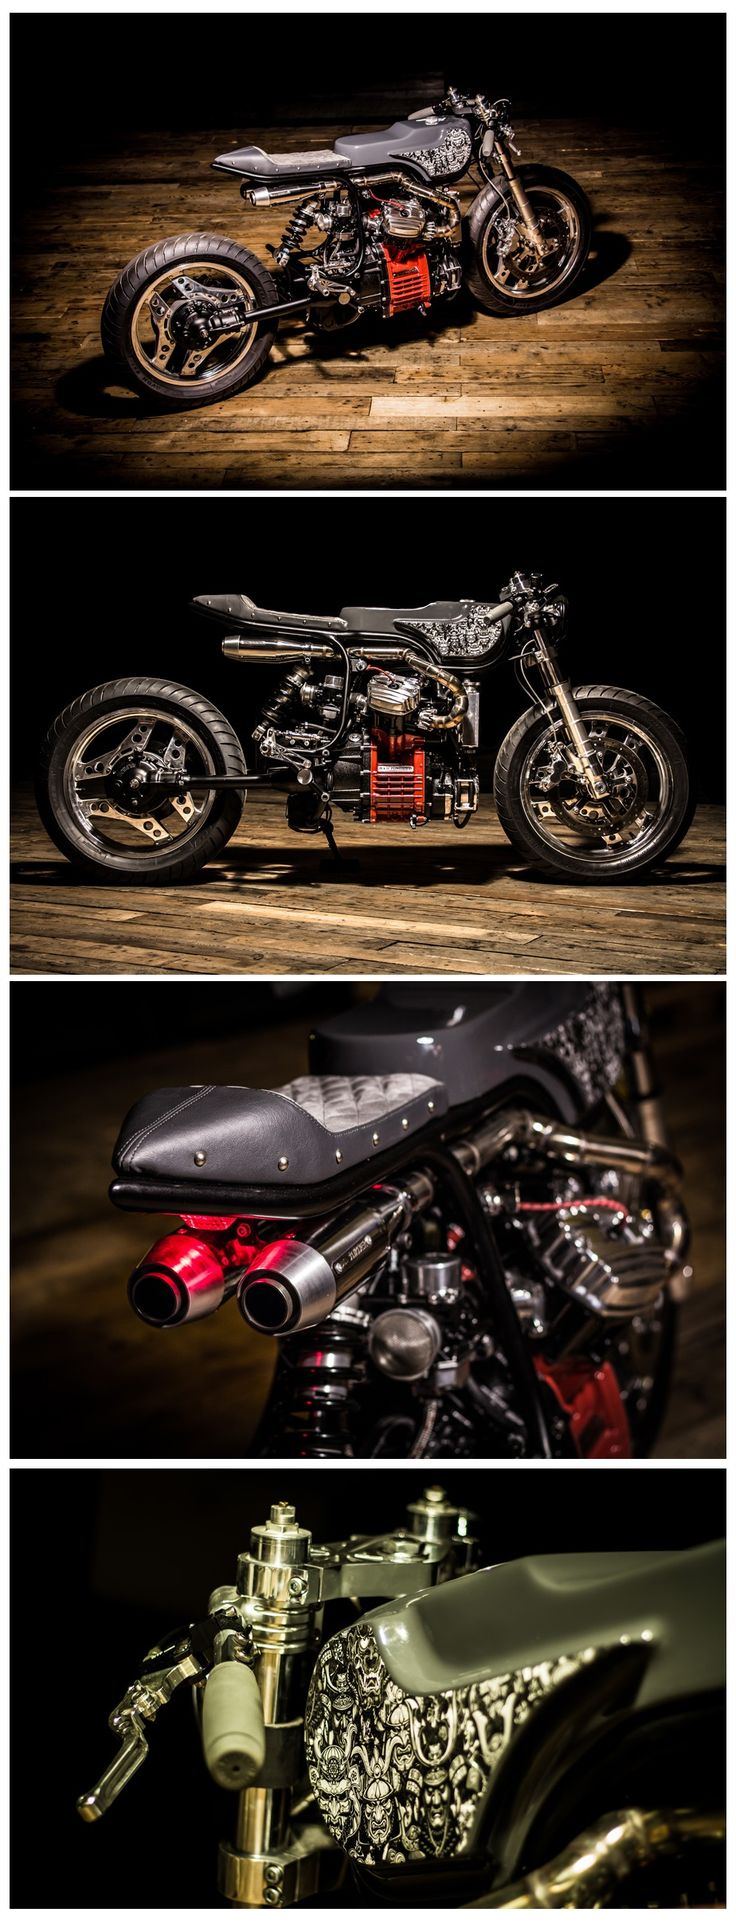 A stunning Honda CX500 Cafe Racer by Ed Turner Motorcycles